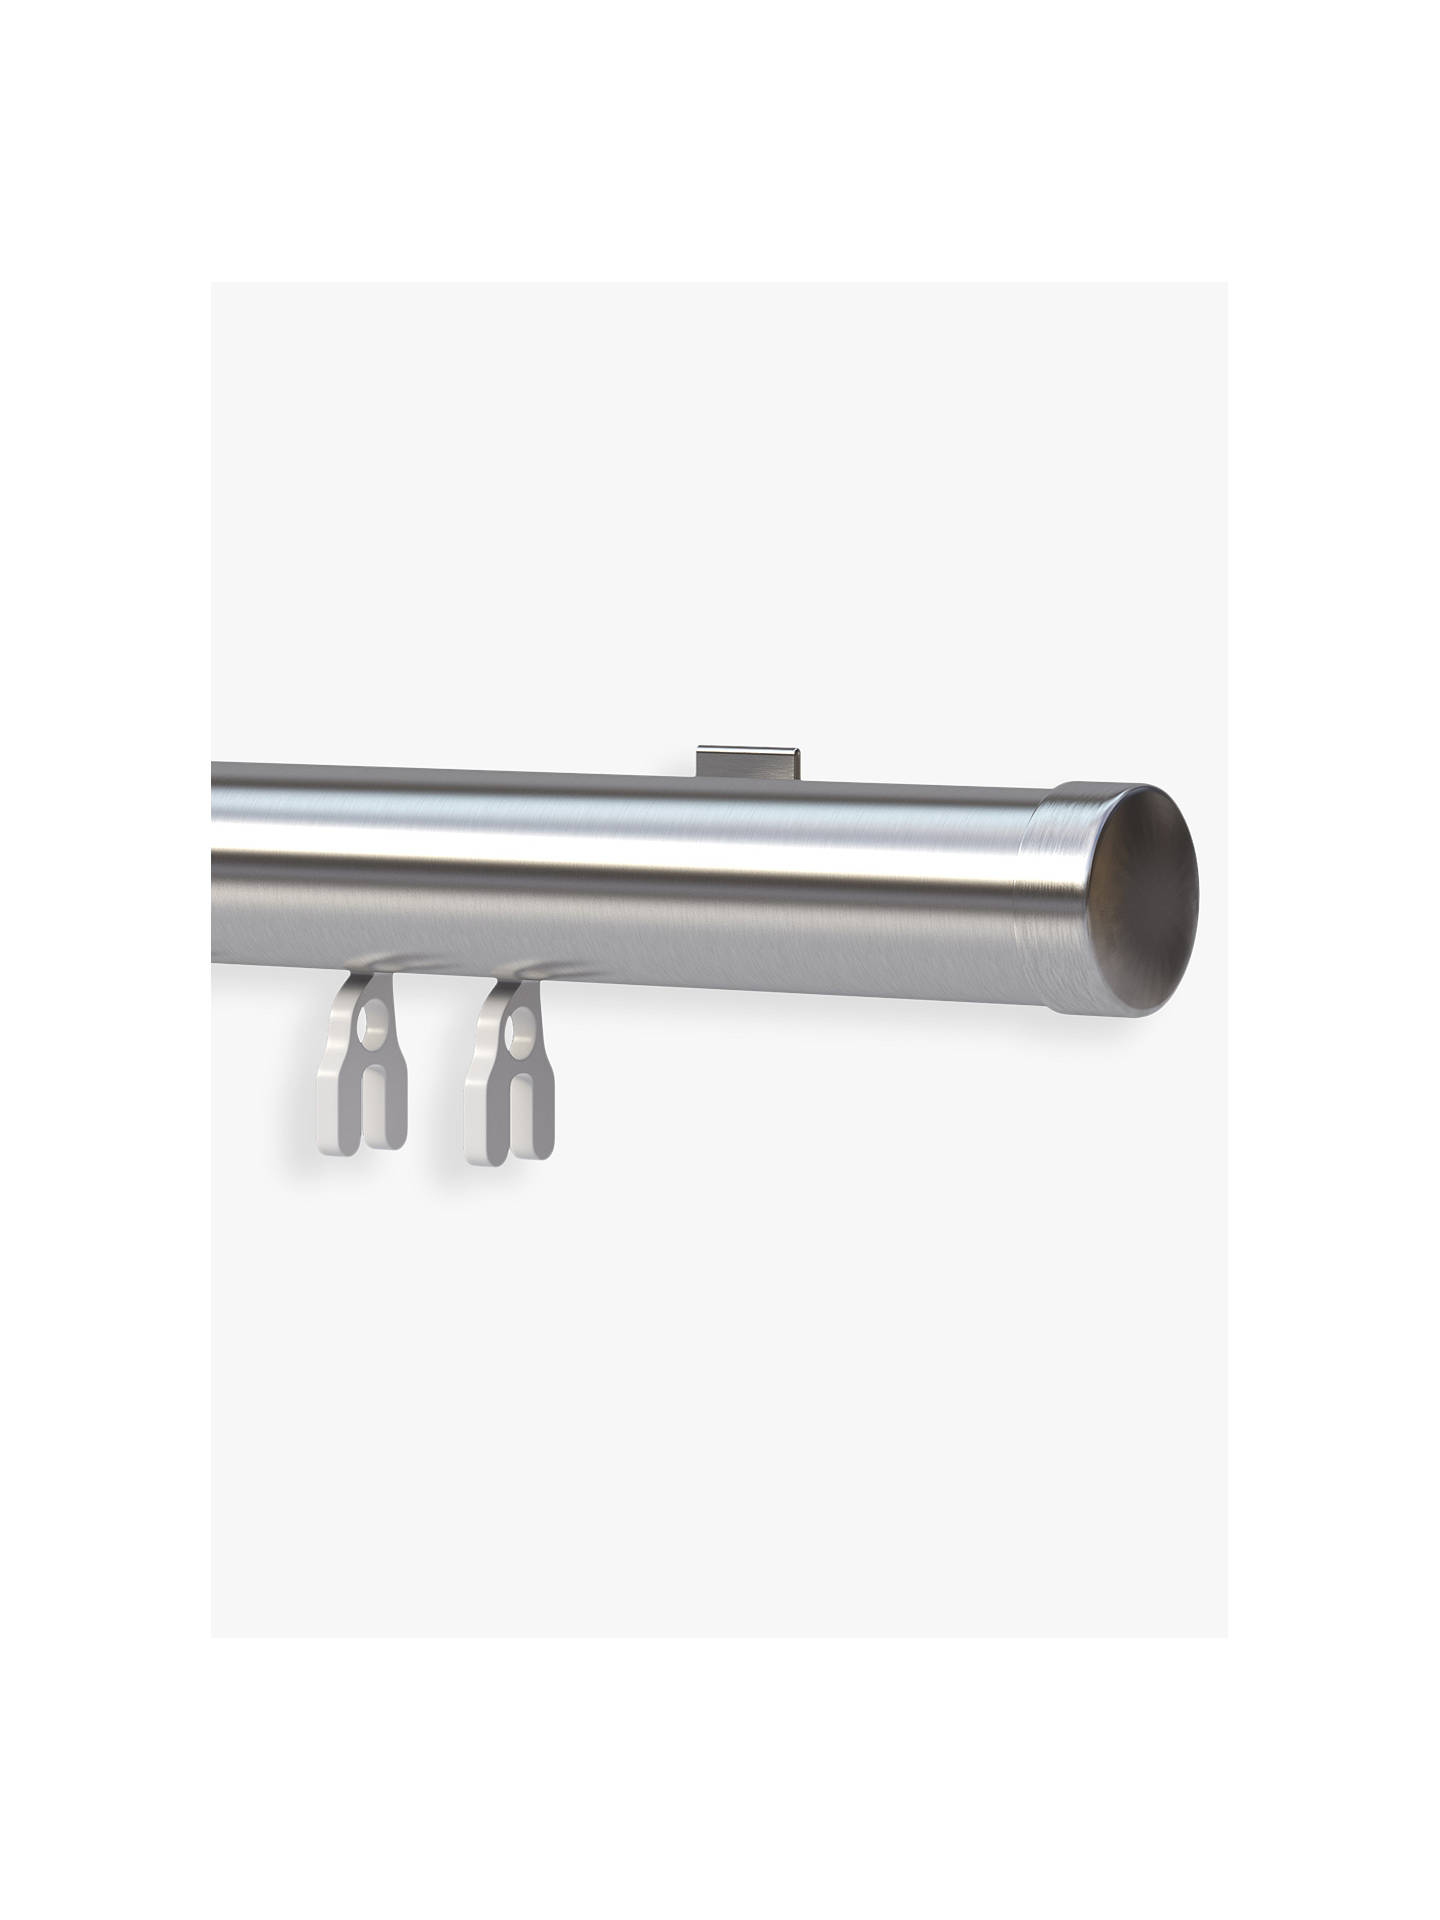 BuyJohn Lewis & Partners Perfect Pleat Curtain Track, Satin Silver, Dia.28mm x L150cm Online at johnlewis.com